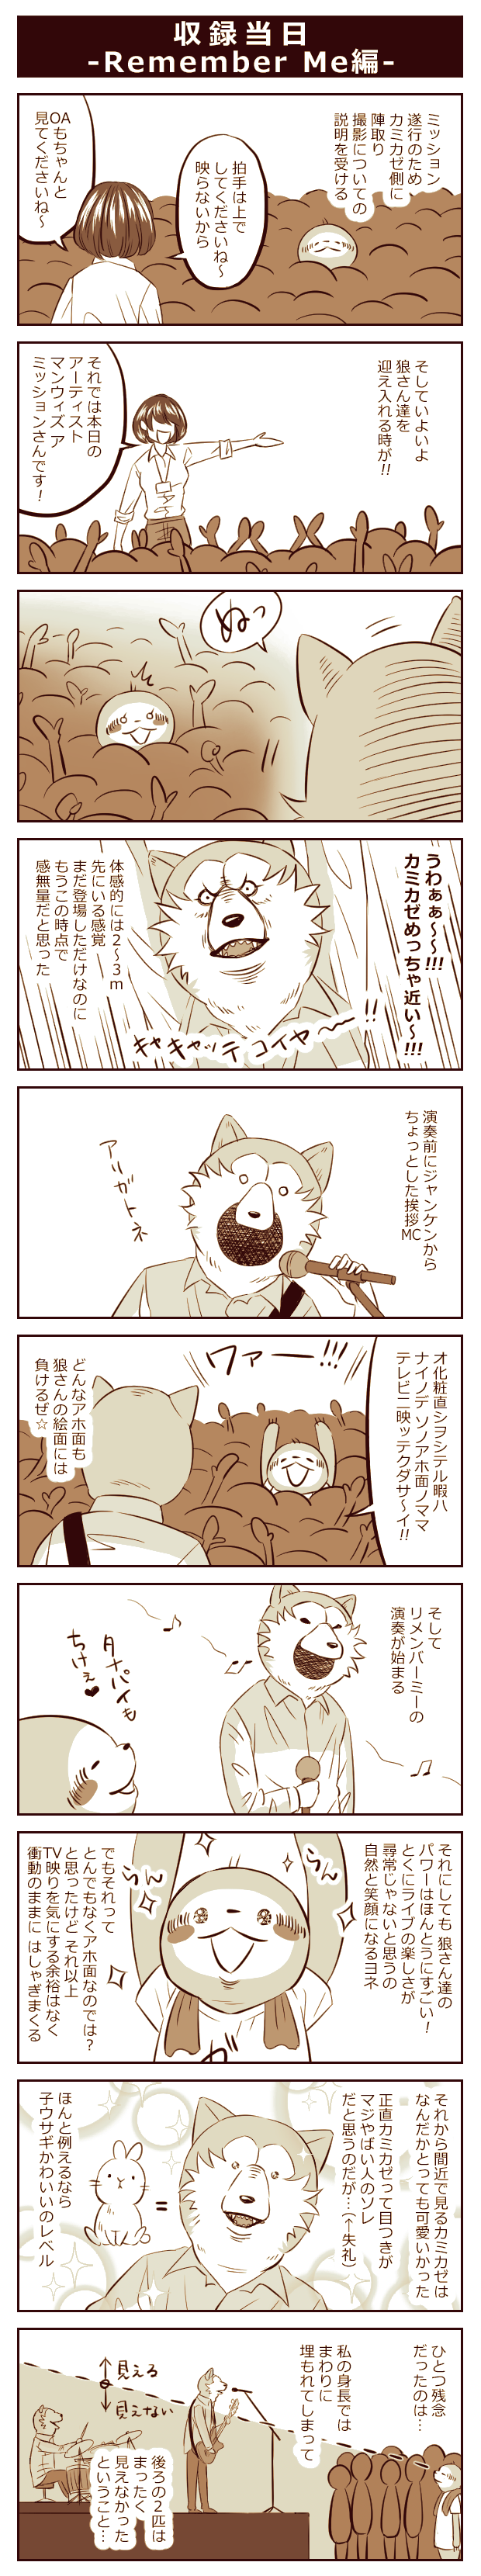 LoveMusic MWAM観覧漫画 #3